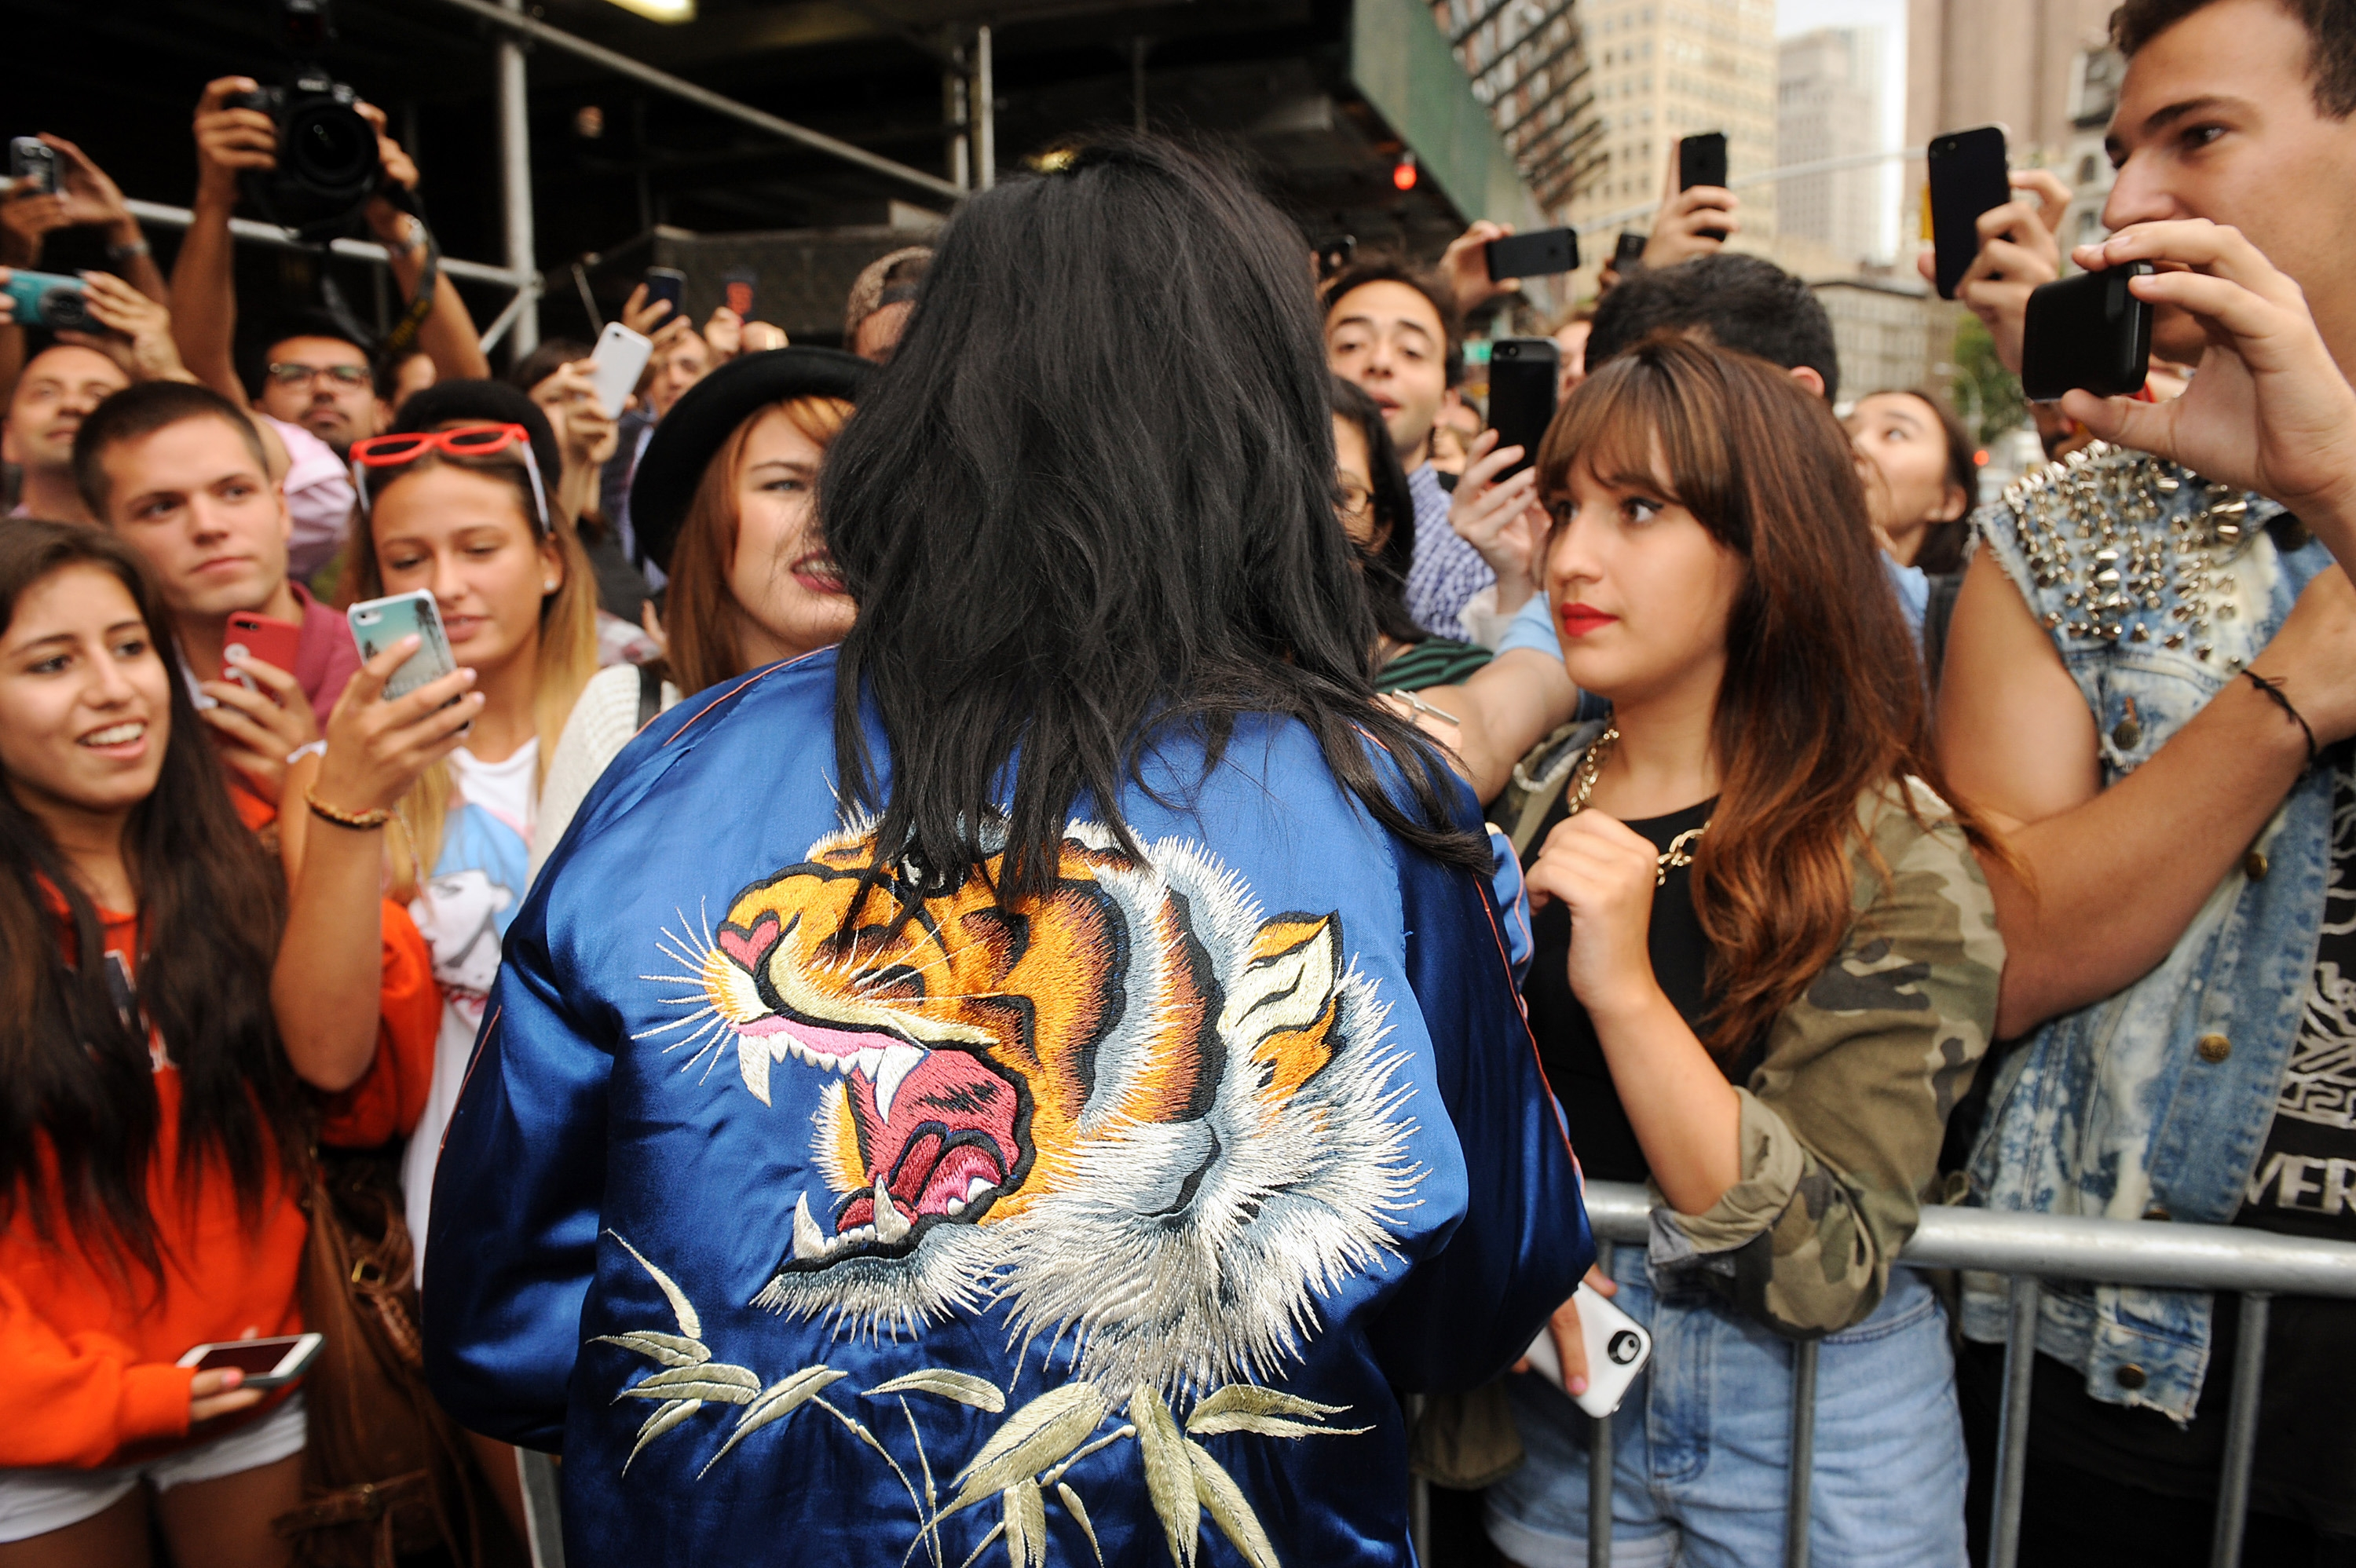 """Katy Perry, back to camera, was dressed for the occasion when she arrived for the world premiere of her new single, """"Roar,"""" on Monday in New York City."""